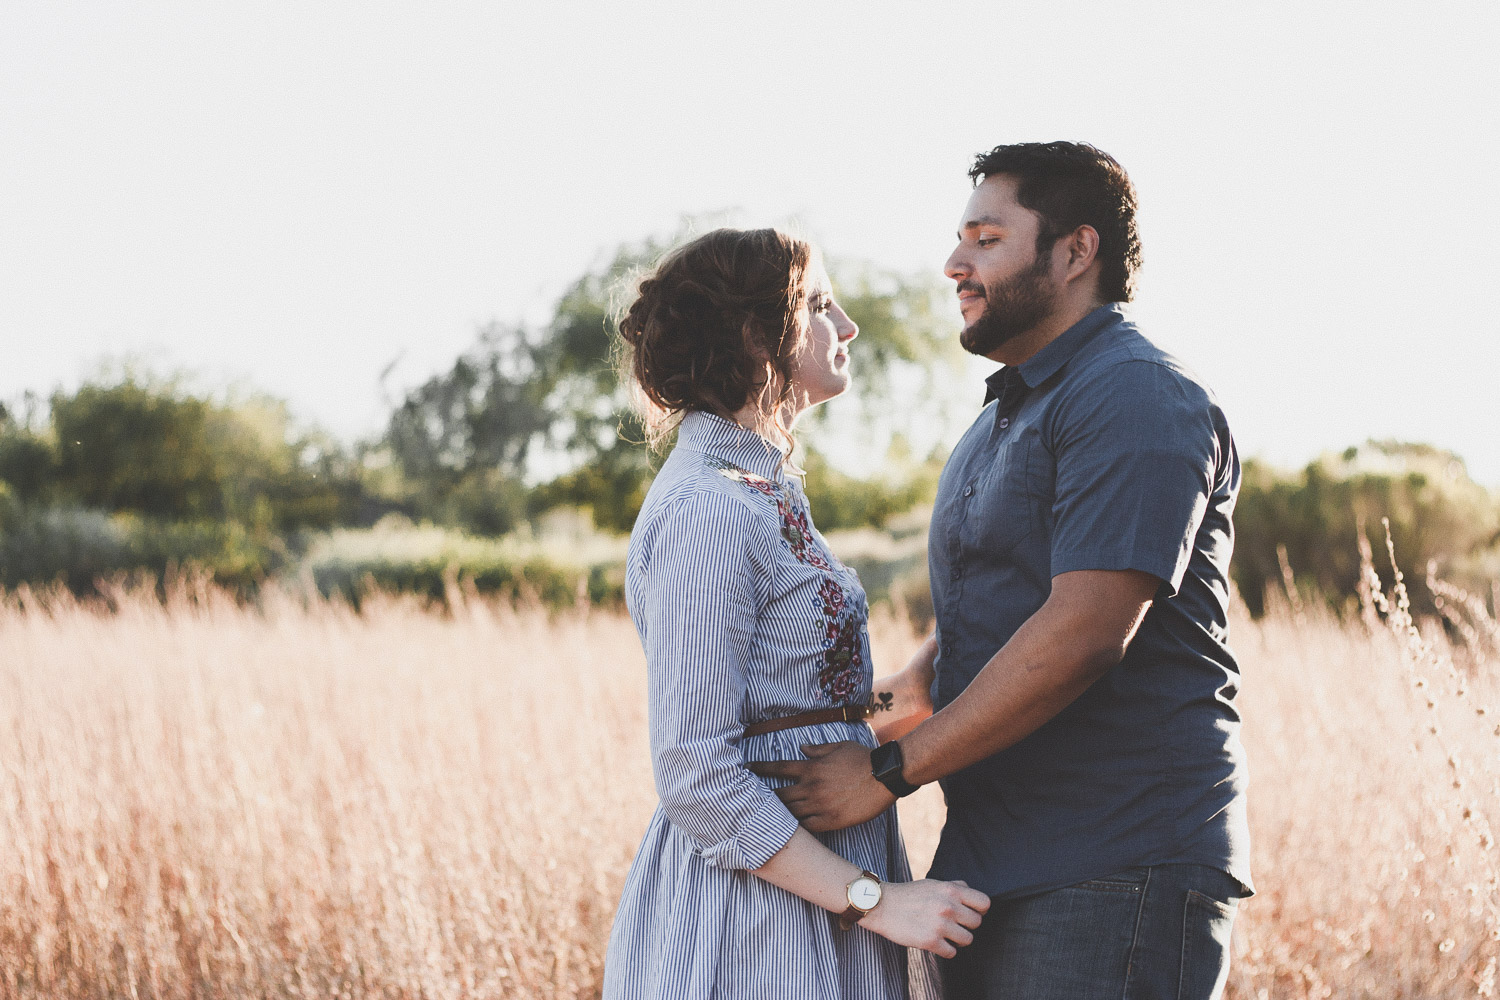 Couple | Natural light lifestyle family photography session | Mesa AZ